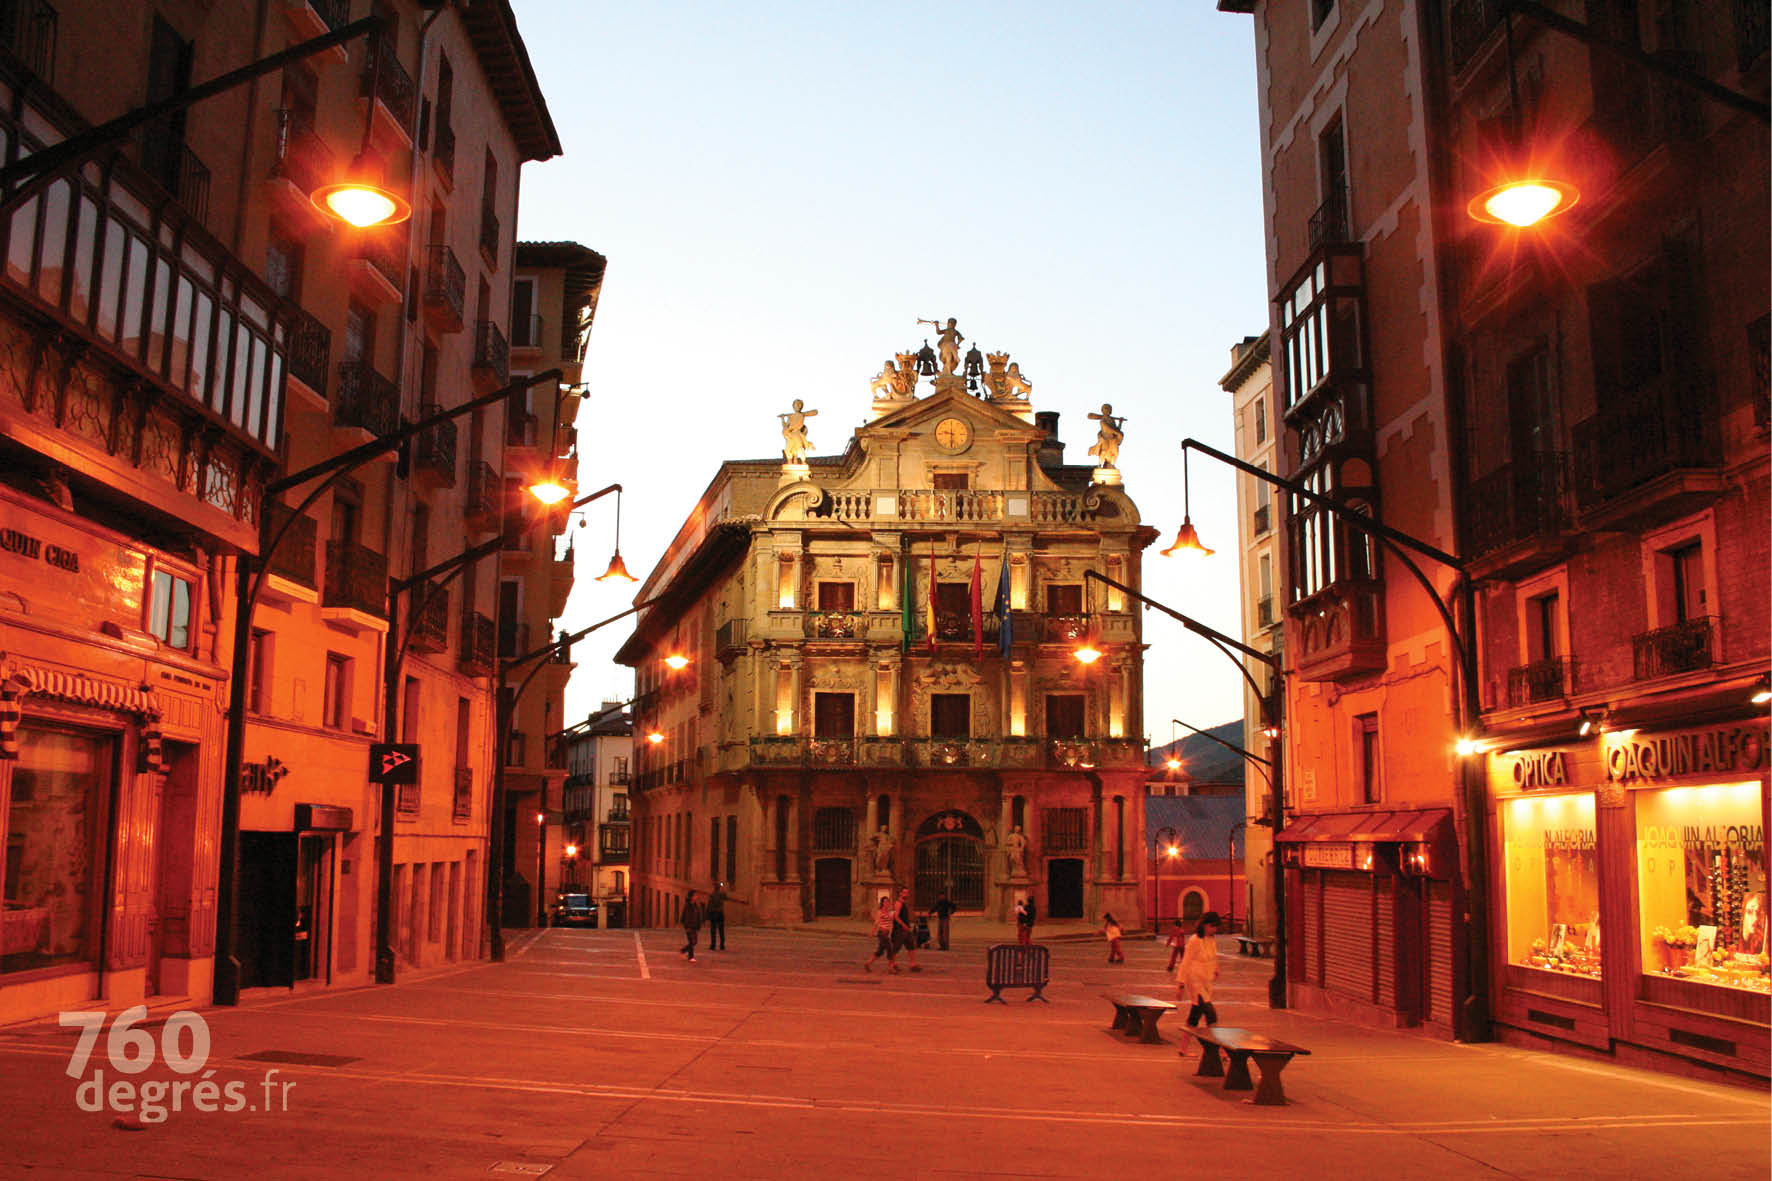 760degres-pays-basque-pamplona-10